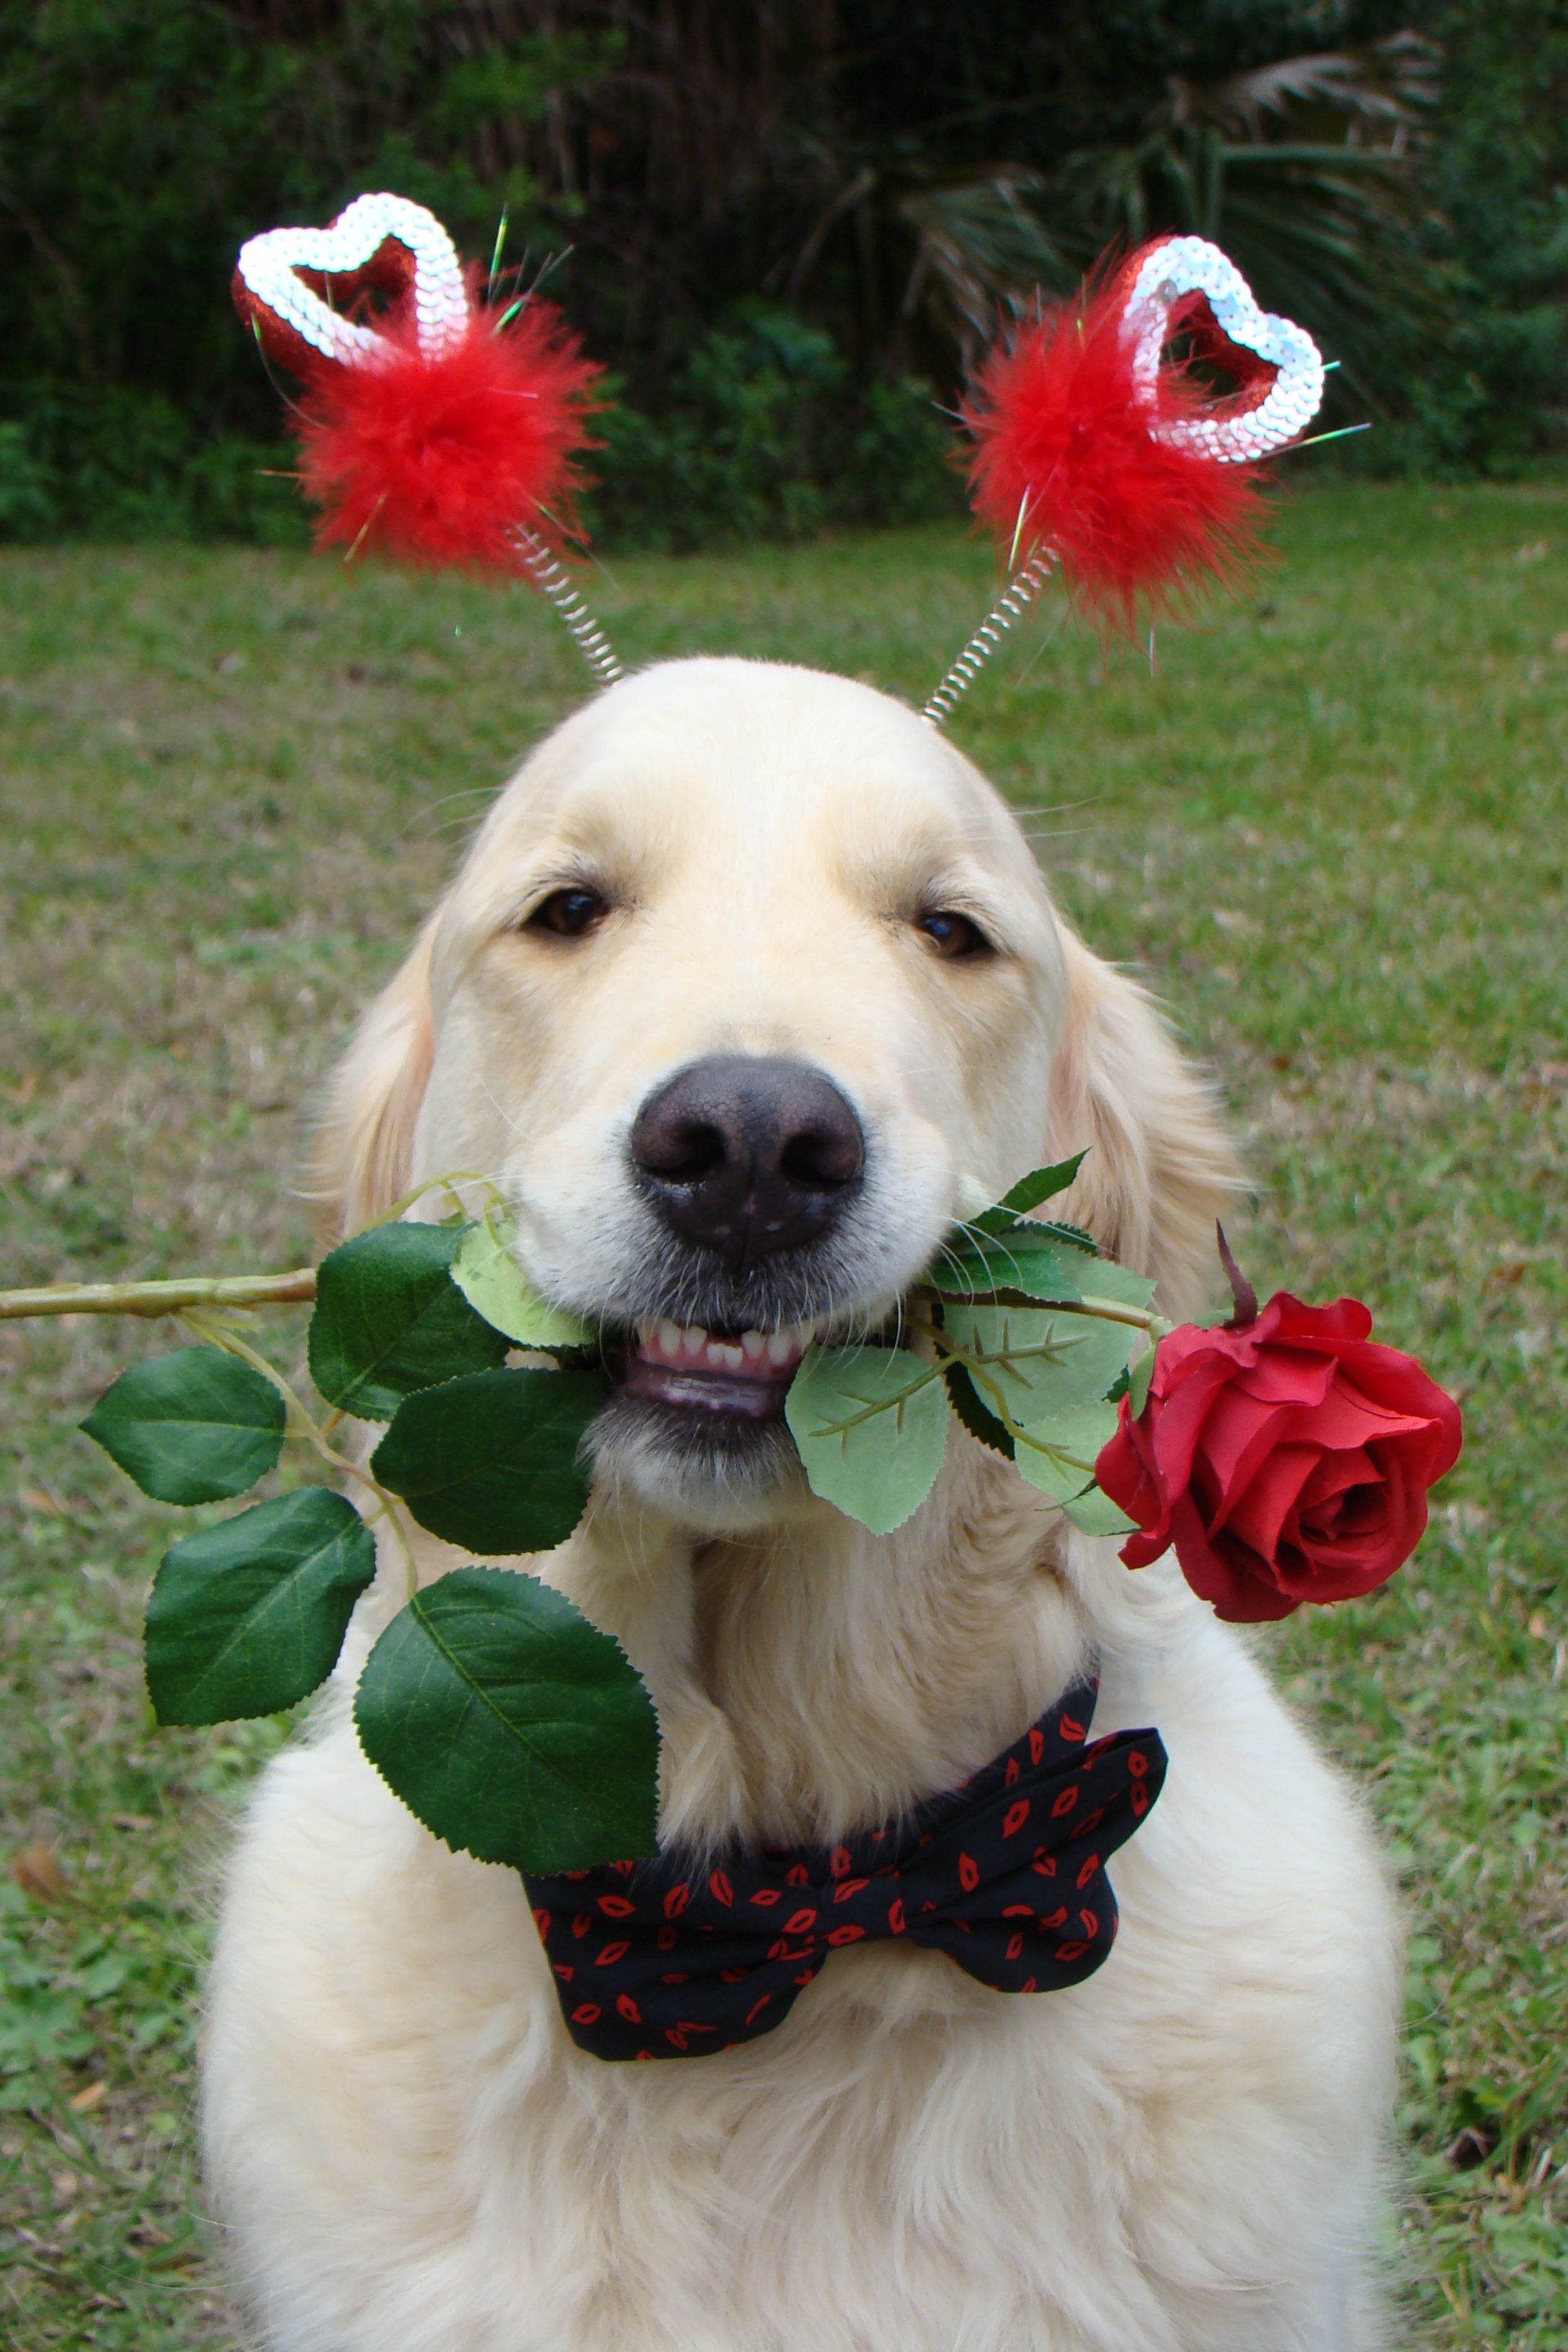 Bentley with a Rose for his Sweetheart Perros con flores